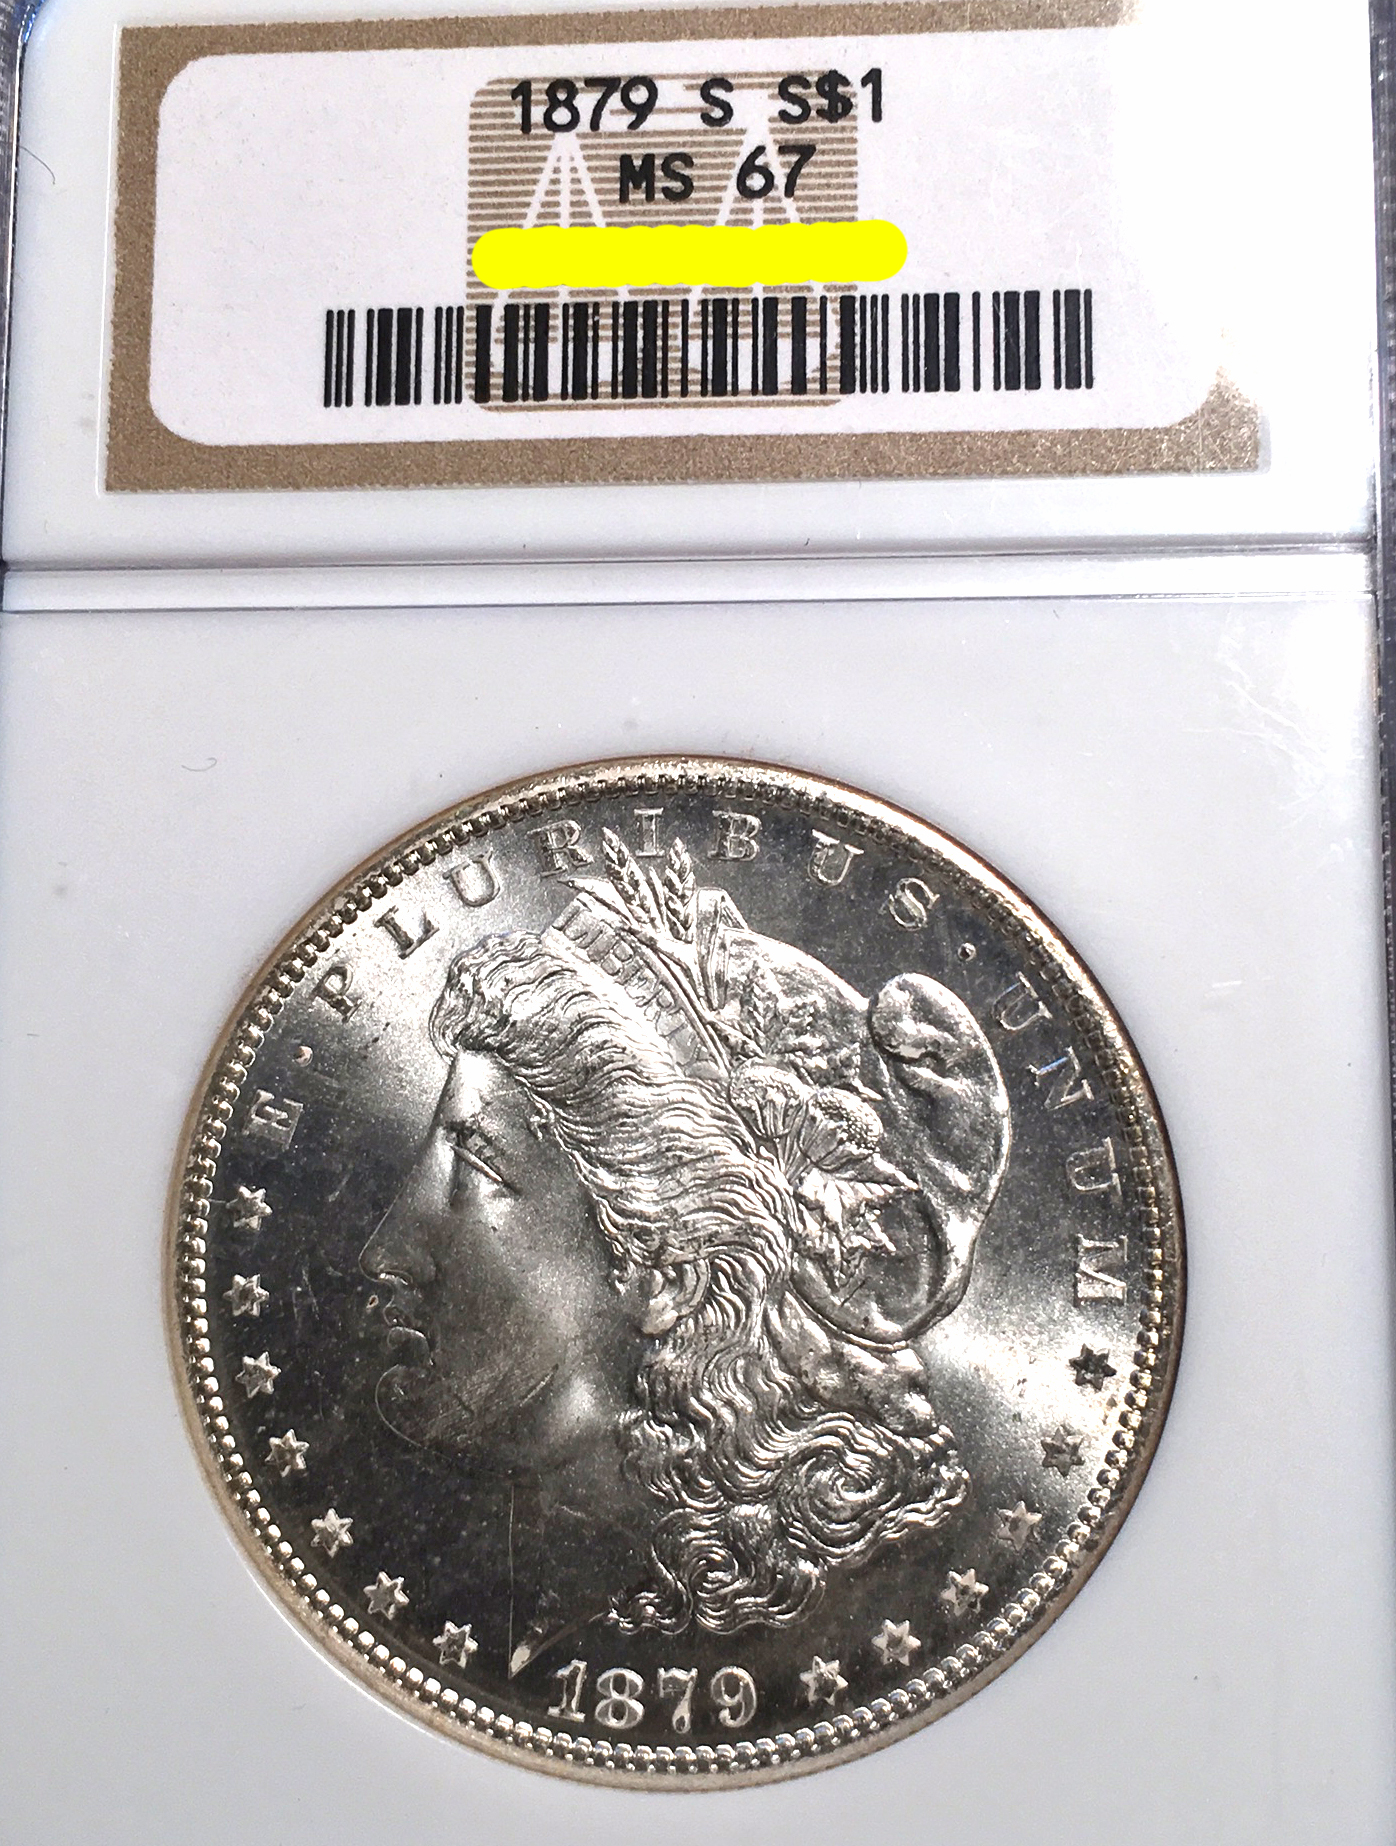 December 2016 Coin Show 1879 S Morgan Dollar MS-67 NGC